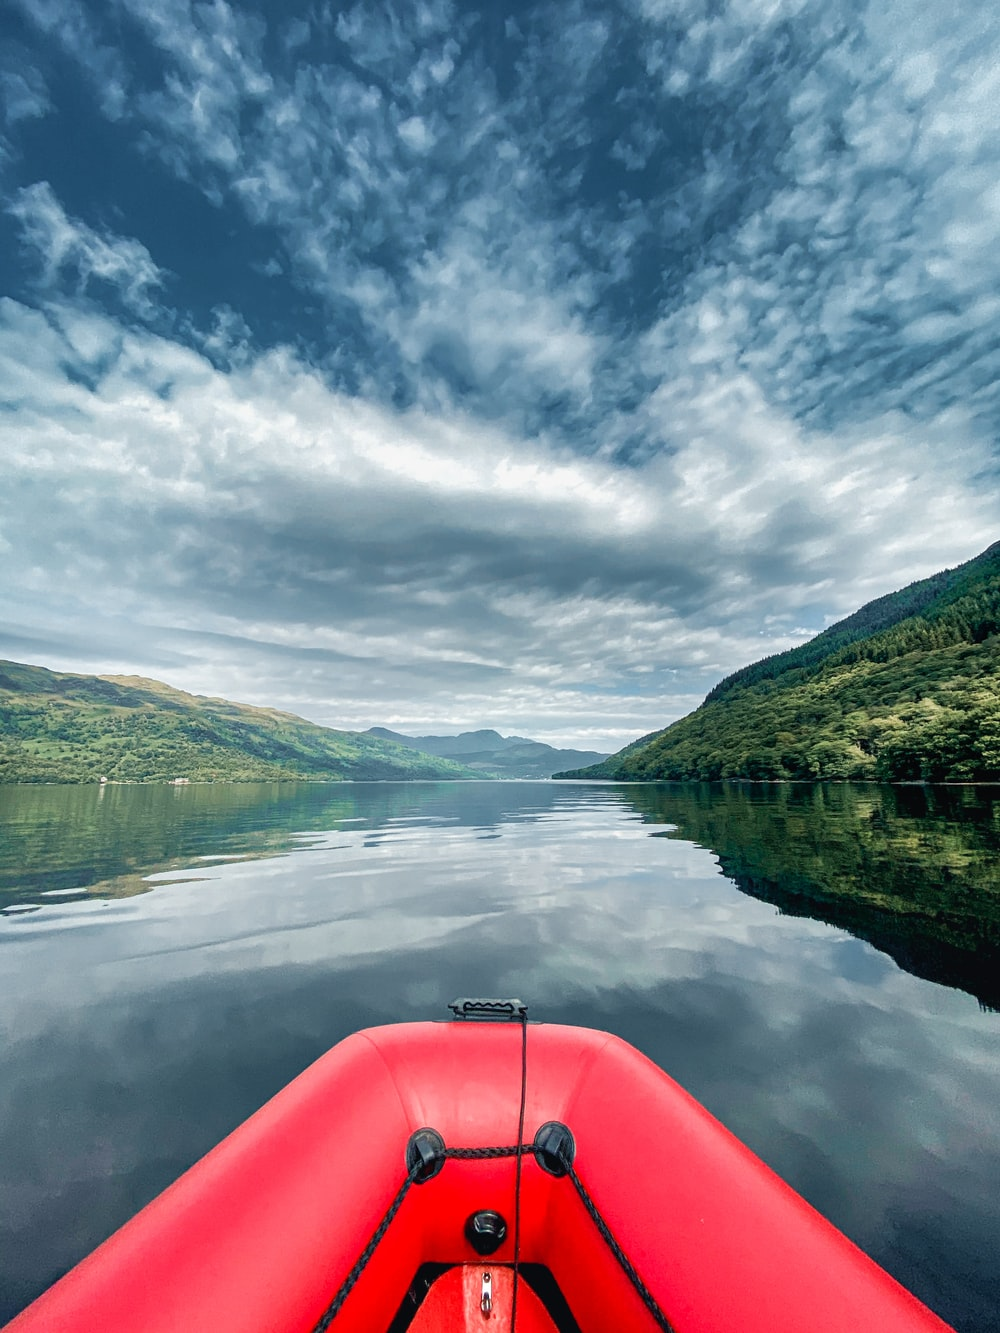 red kayak on lake near green mountains under white clouds and blue sky during daytime